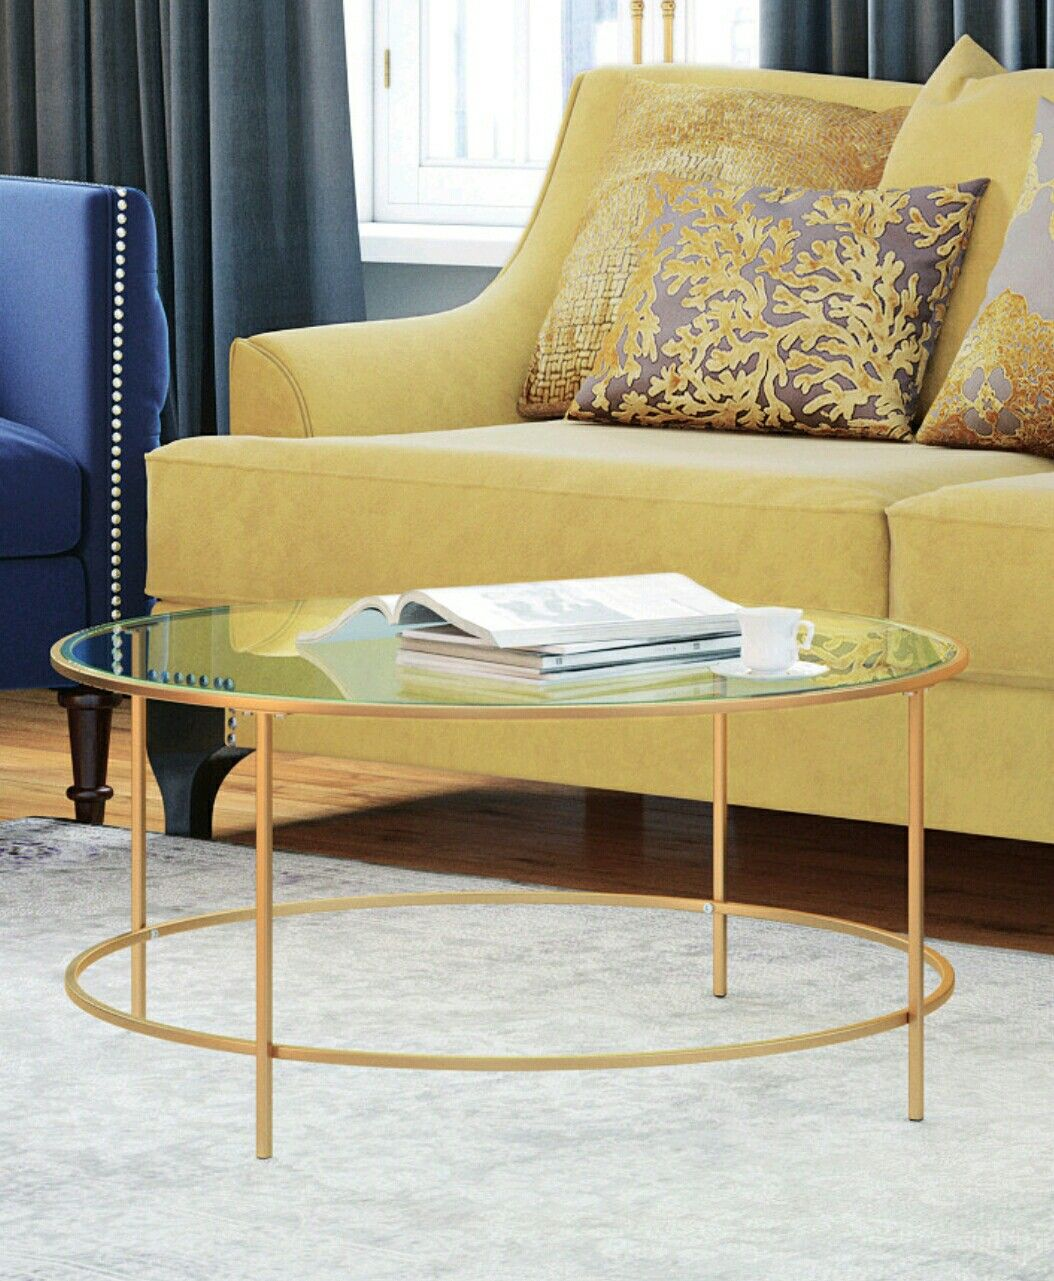 Gold Tone Coffee Table 135 Coffee Table Living Room Decor Furniture Coffee Table Vintage [ 1281 x 1054 Pixel ]